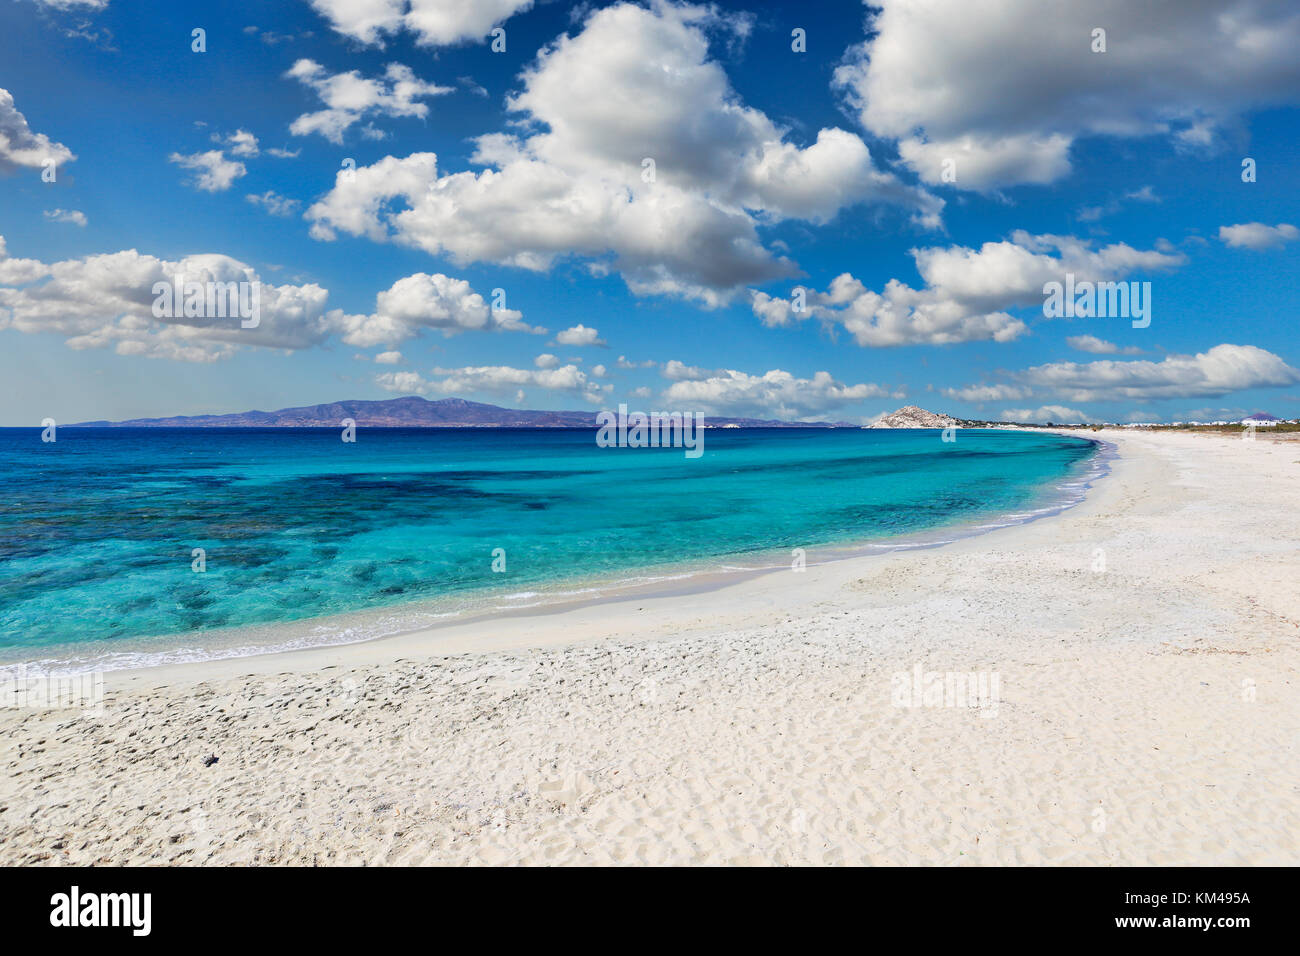 Sahara beach of Naxos island in Cyclades, Greece - Stock Image